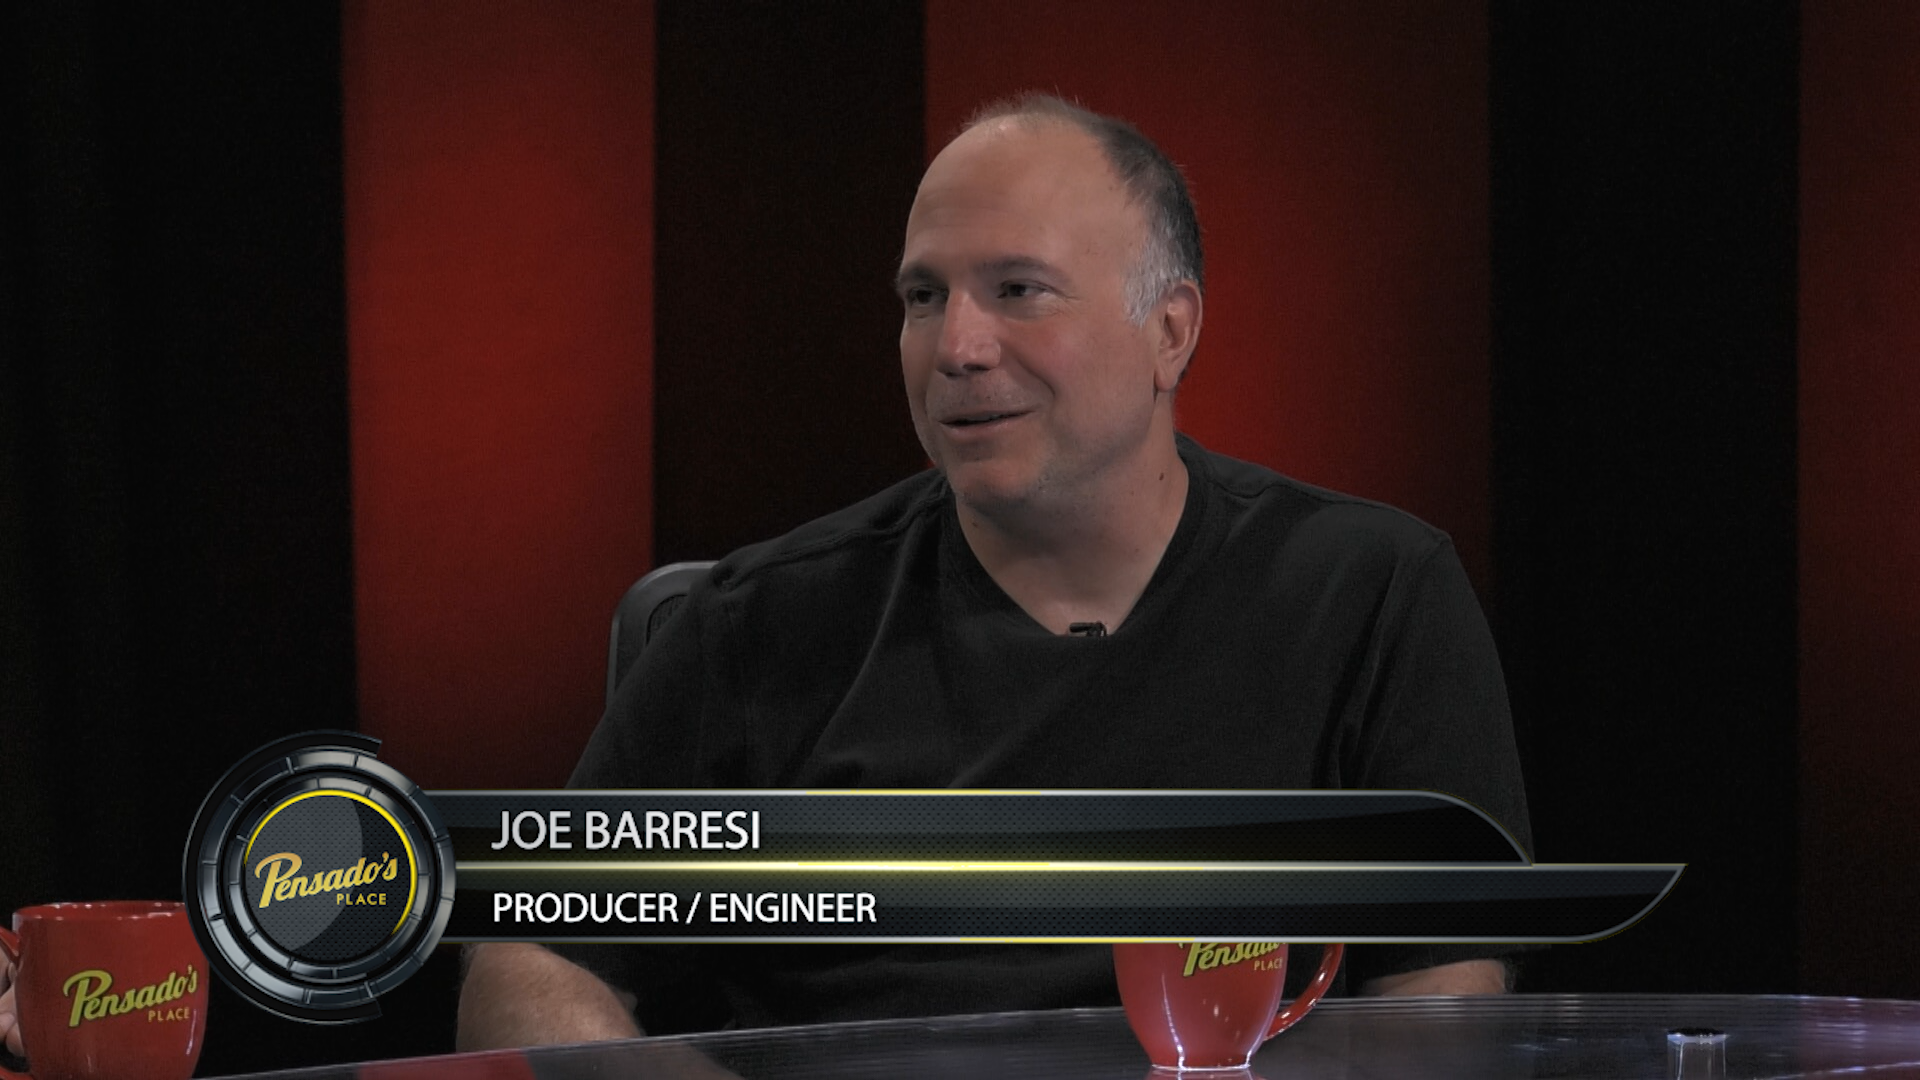 Grammy Nominated Producer/Engineer Joe Barresi